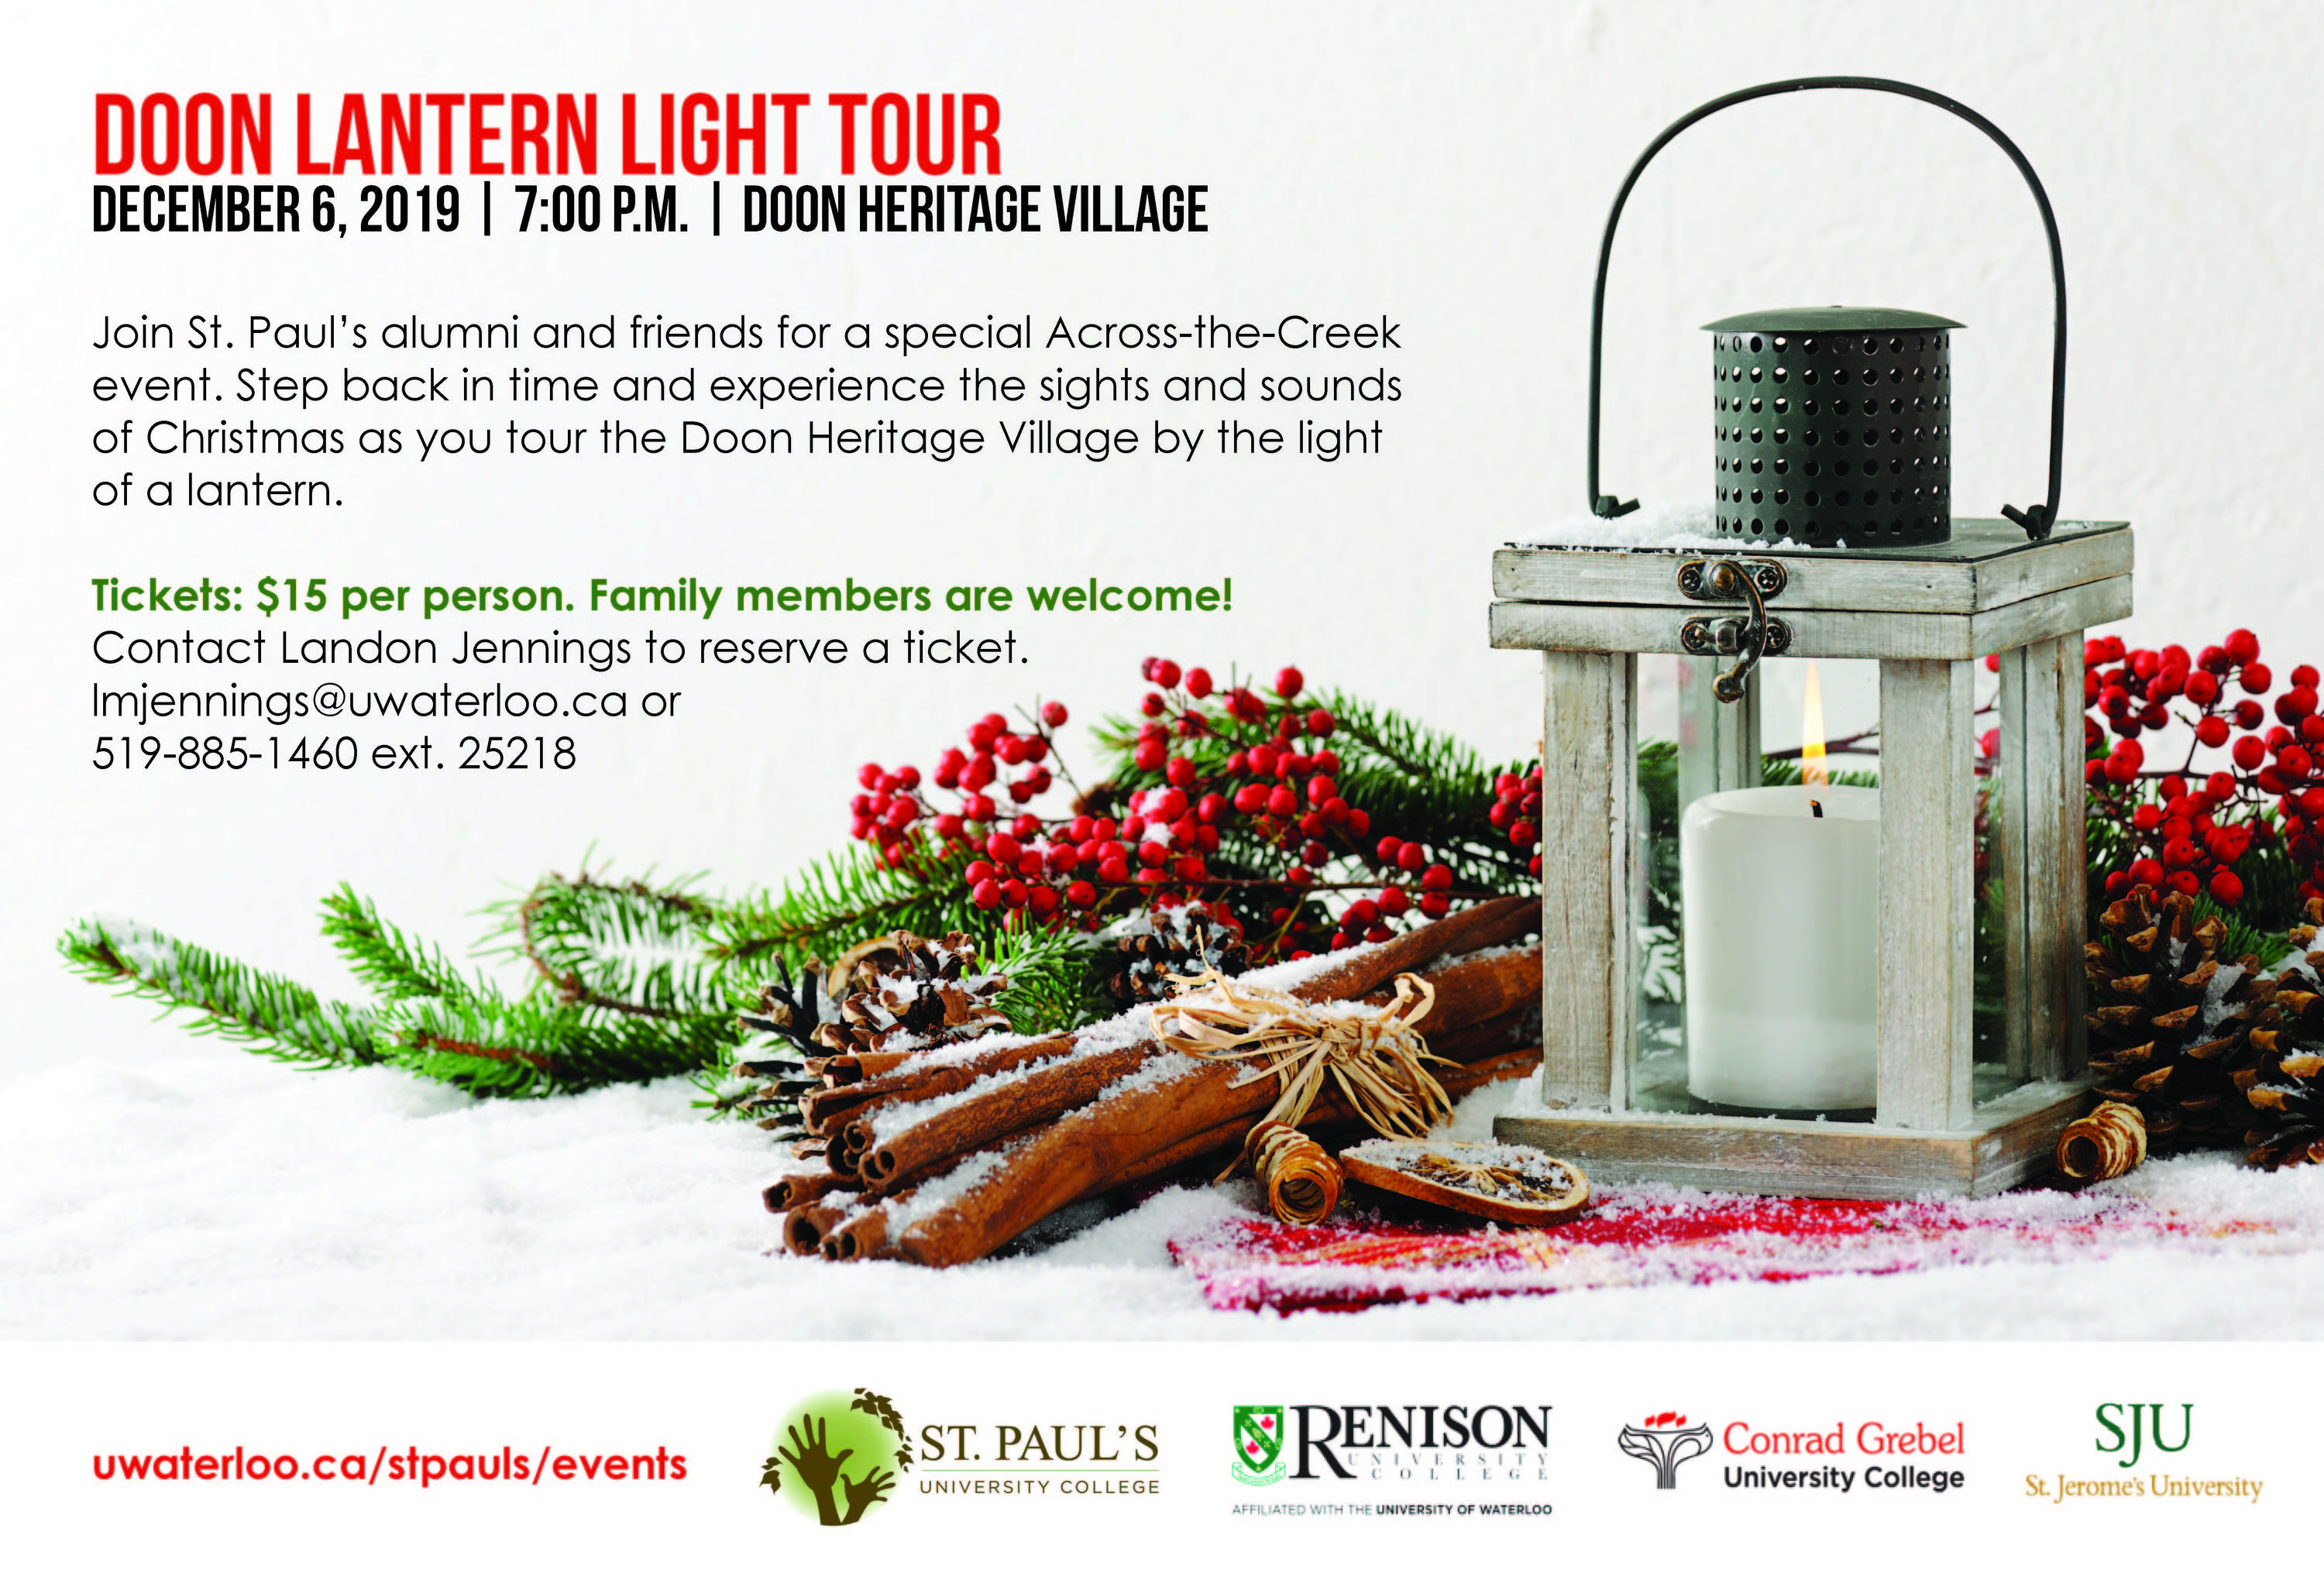 event flyer depicting a candle with Christmas decorations